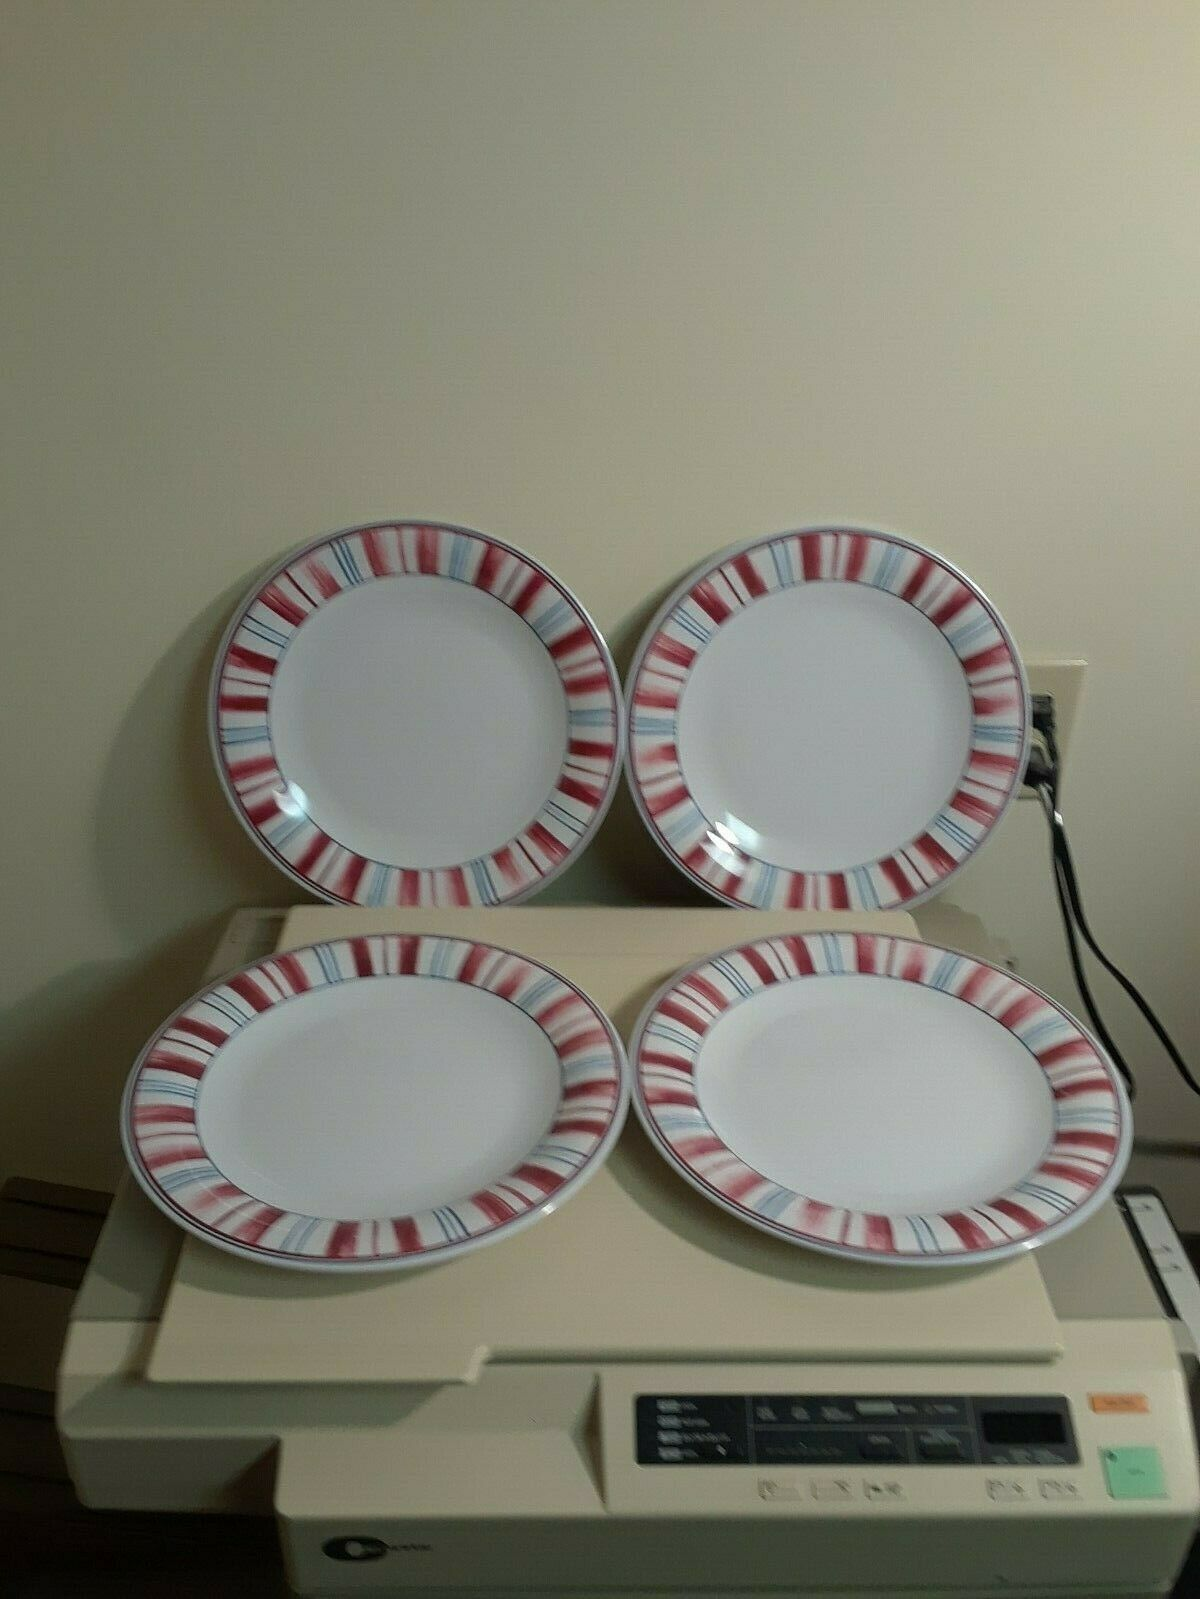 Primary image for Longaberger Stars and Stripes Melamine Plates - Set of 4 - Dinner Plates